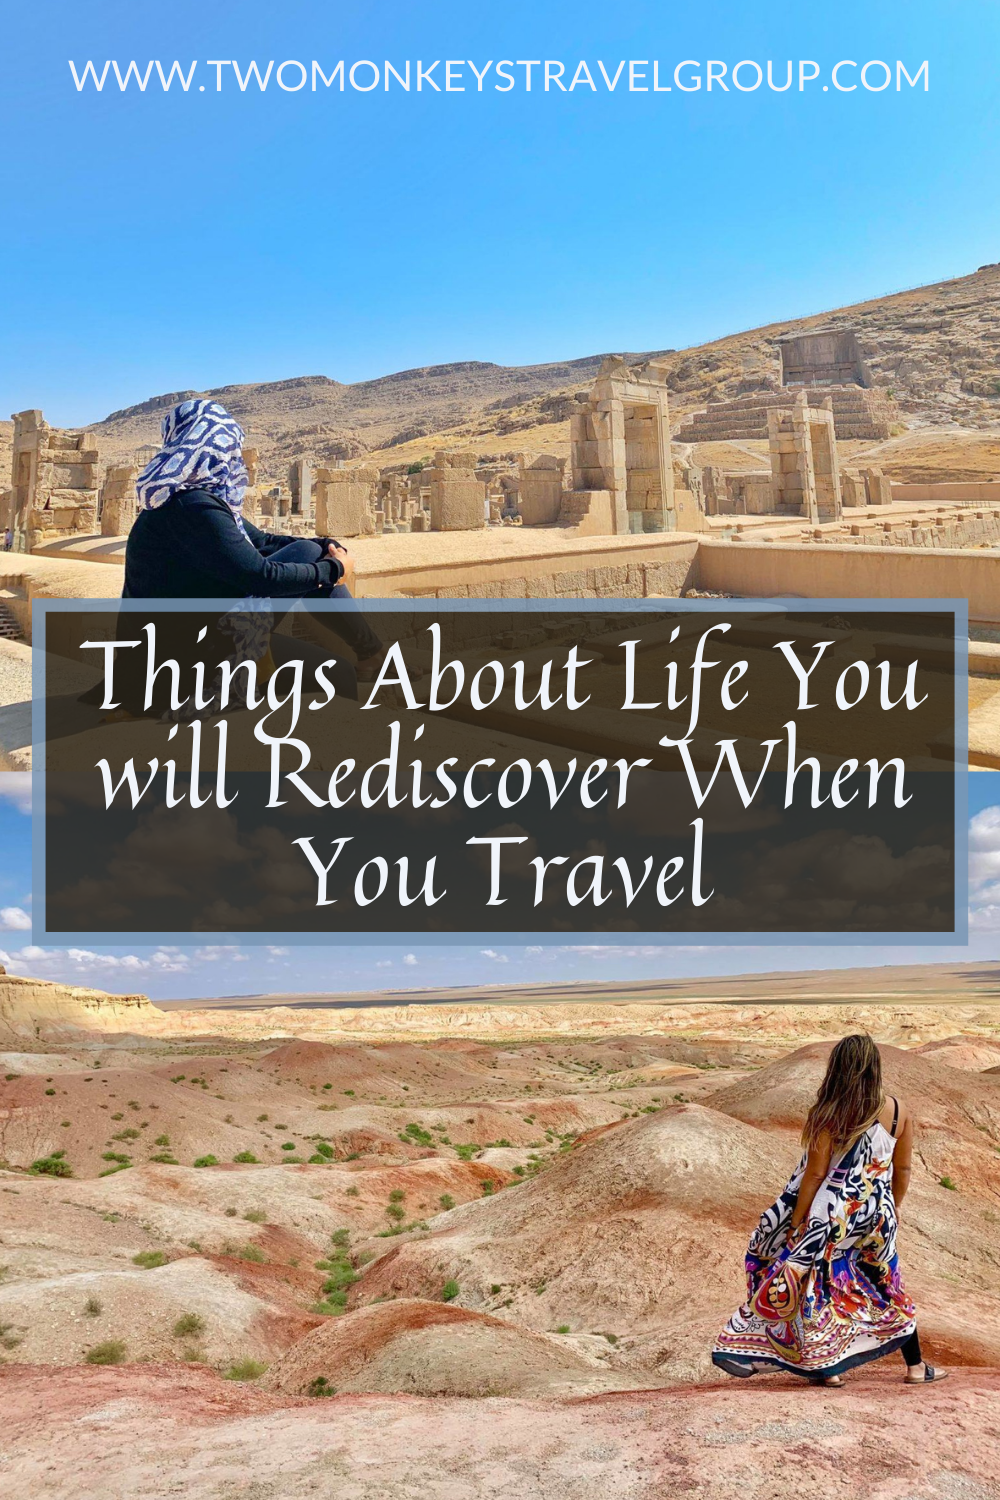 7 Things About Life You will Rediscover When You Travel